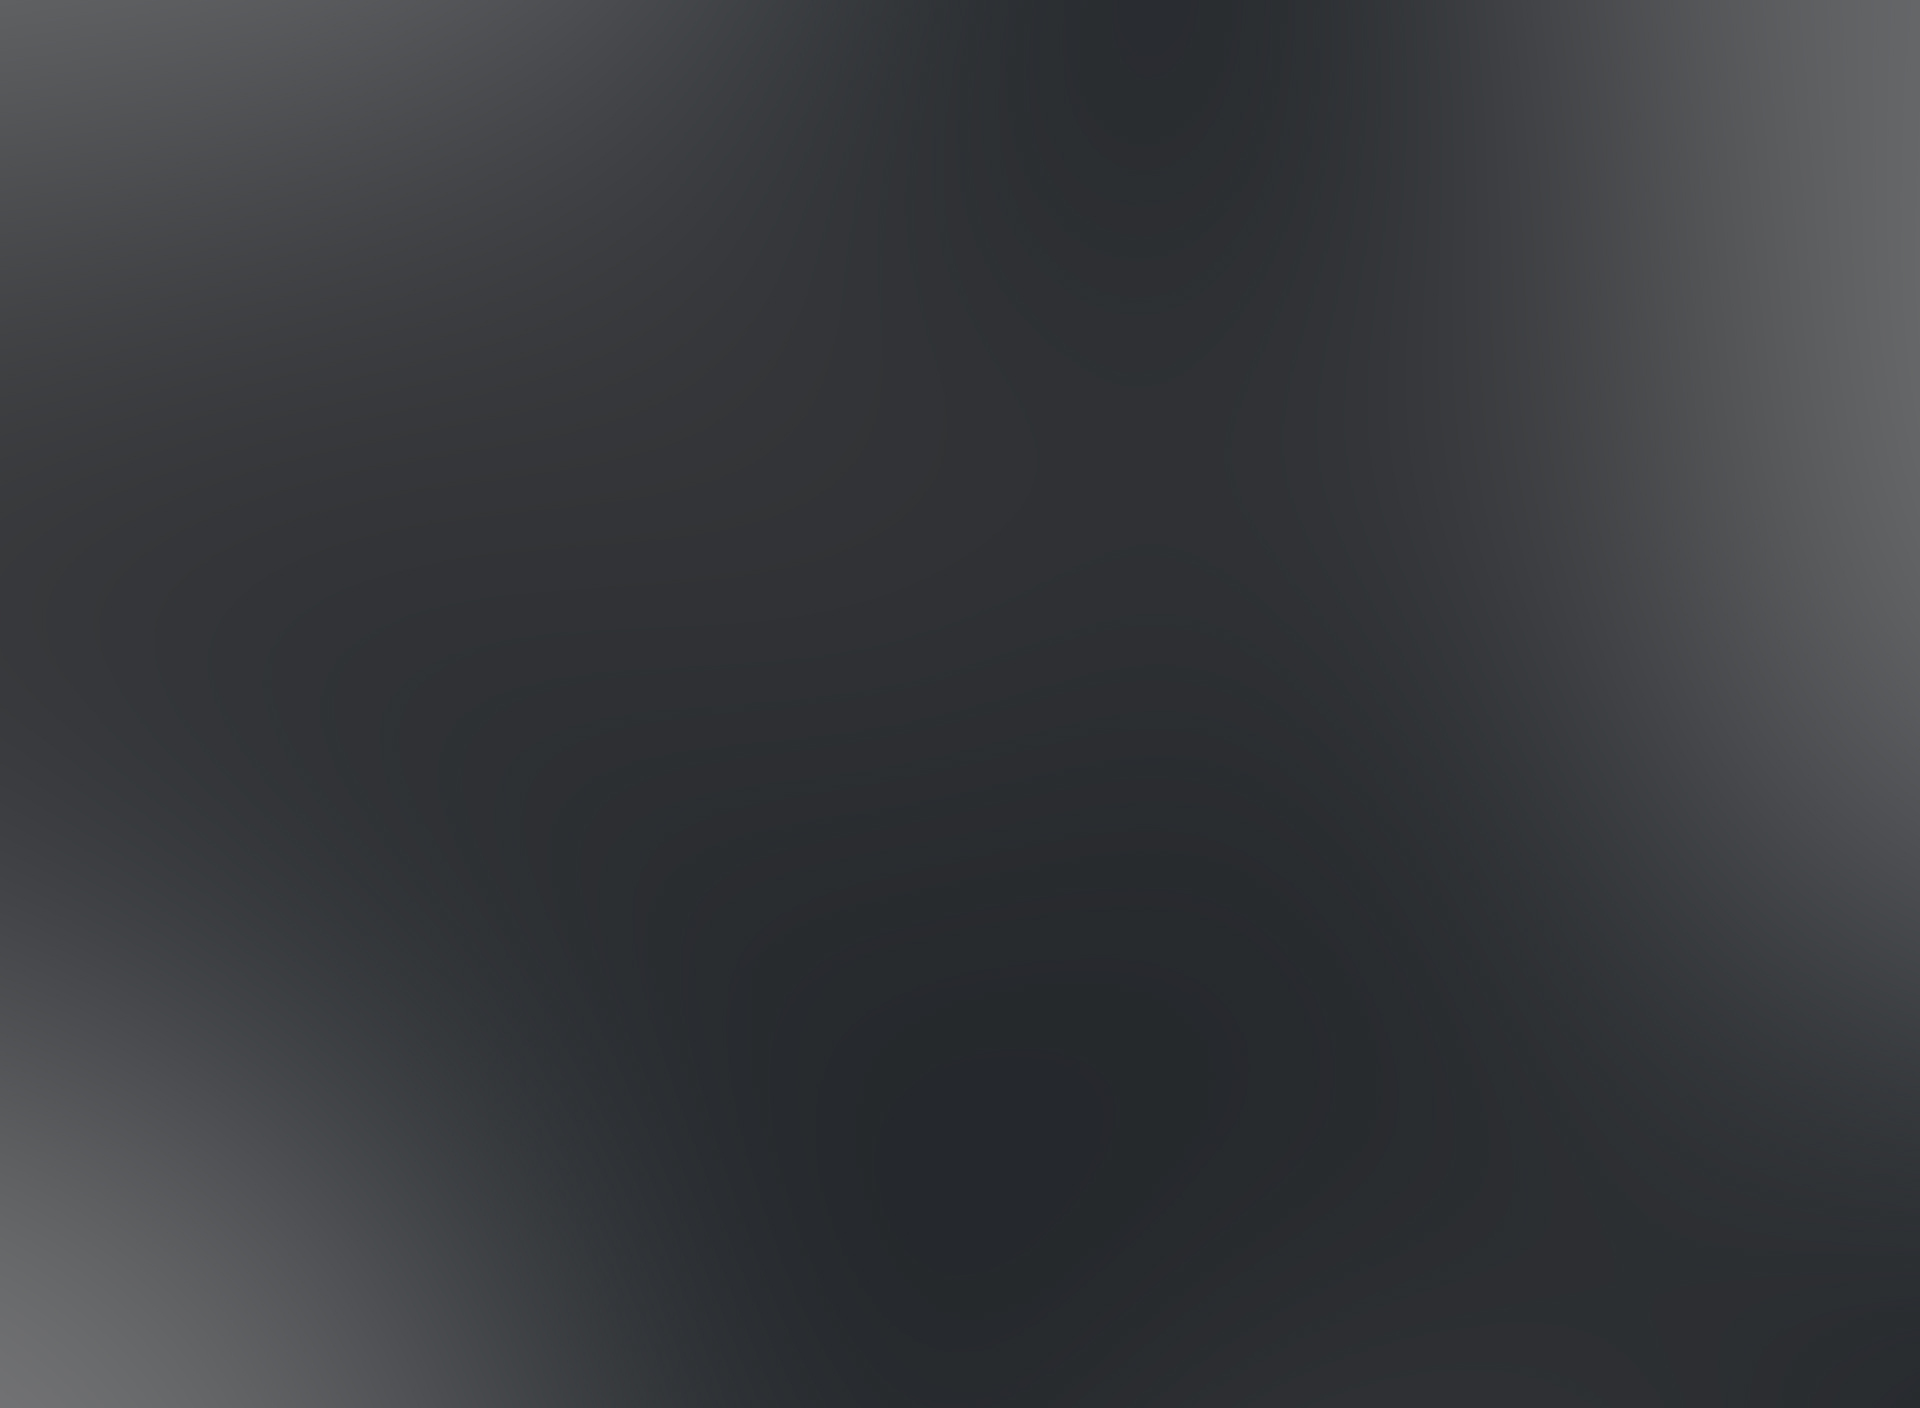 KDE_Plasma/look-and-feel/Neon-Knights-Blue/contents/splash/images/background.png